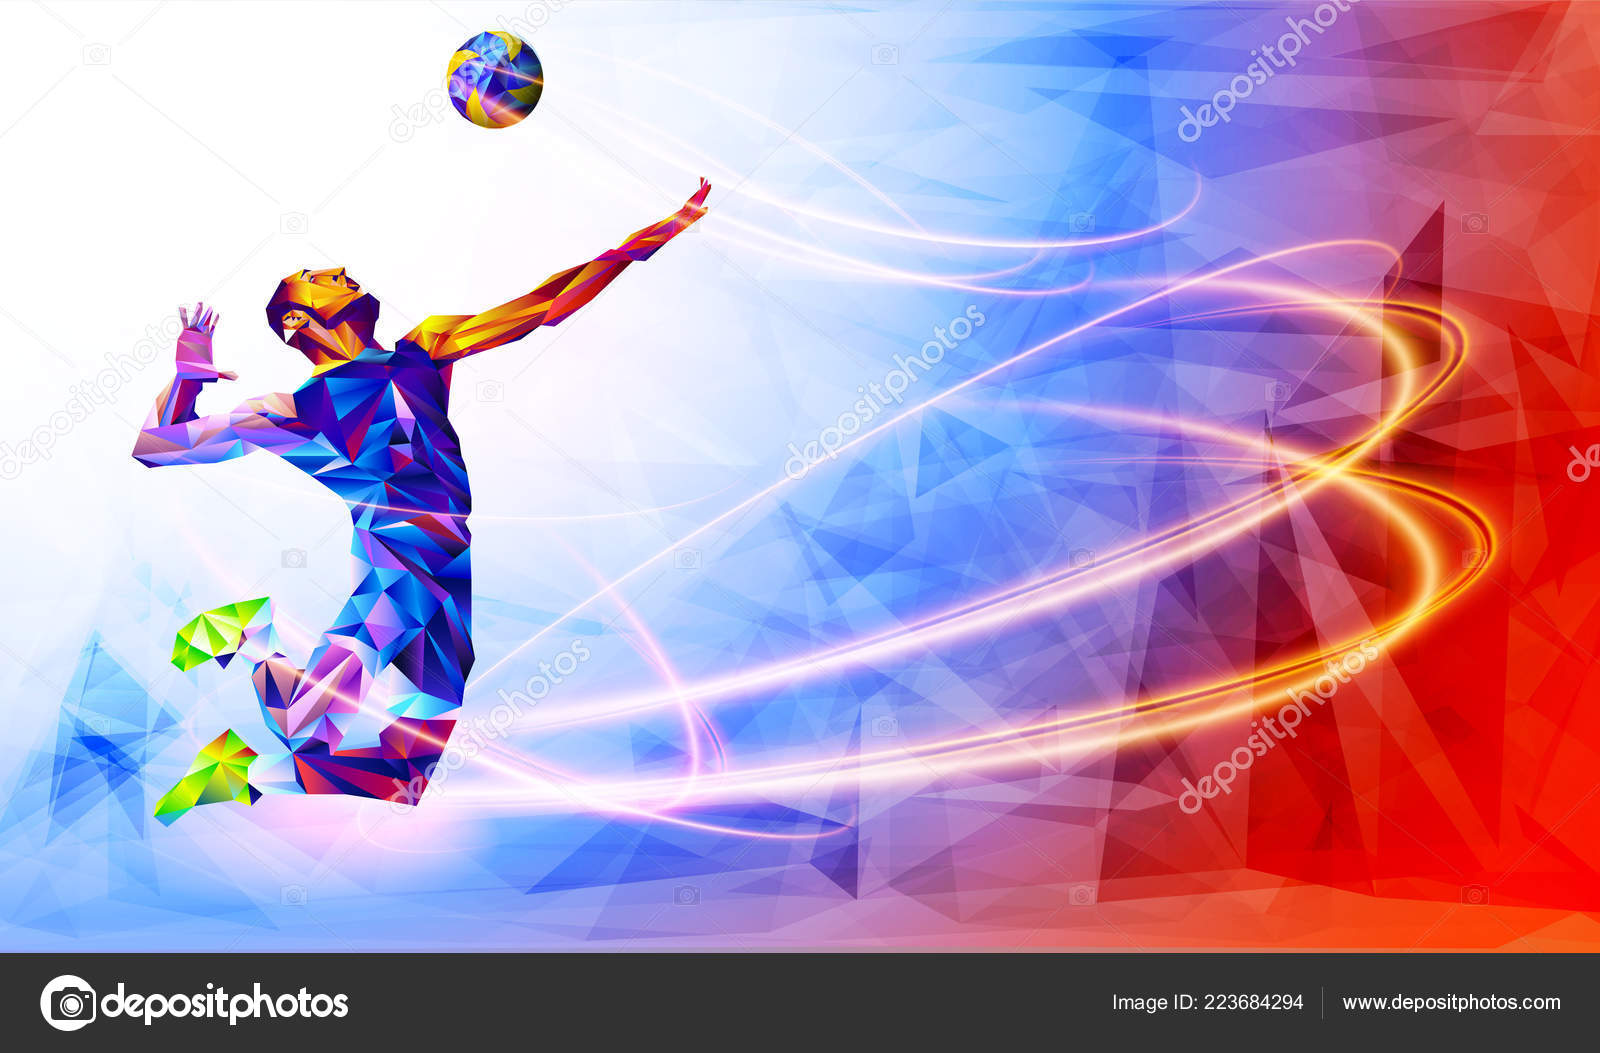 Illustration Abstract Volleyball Player Silhouette: Illustration Abstract Volleyball Player Silhouette